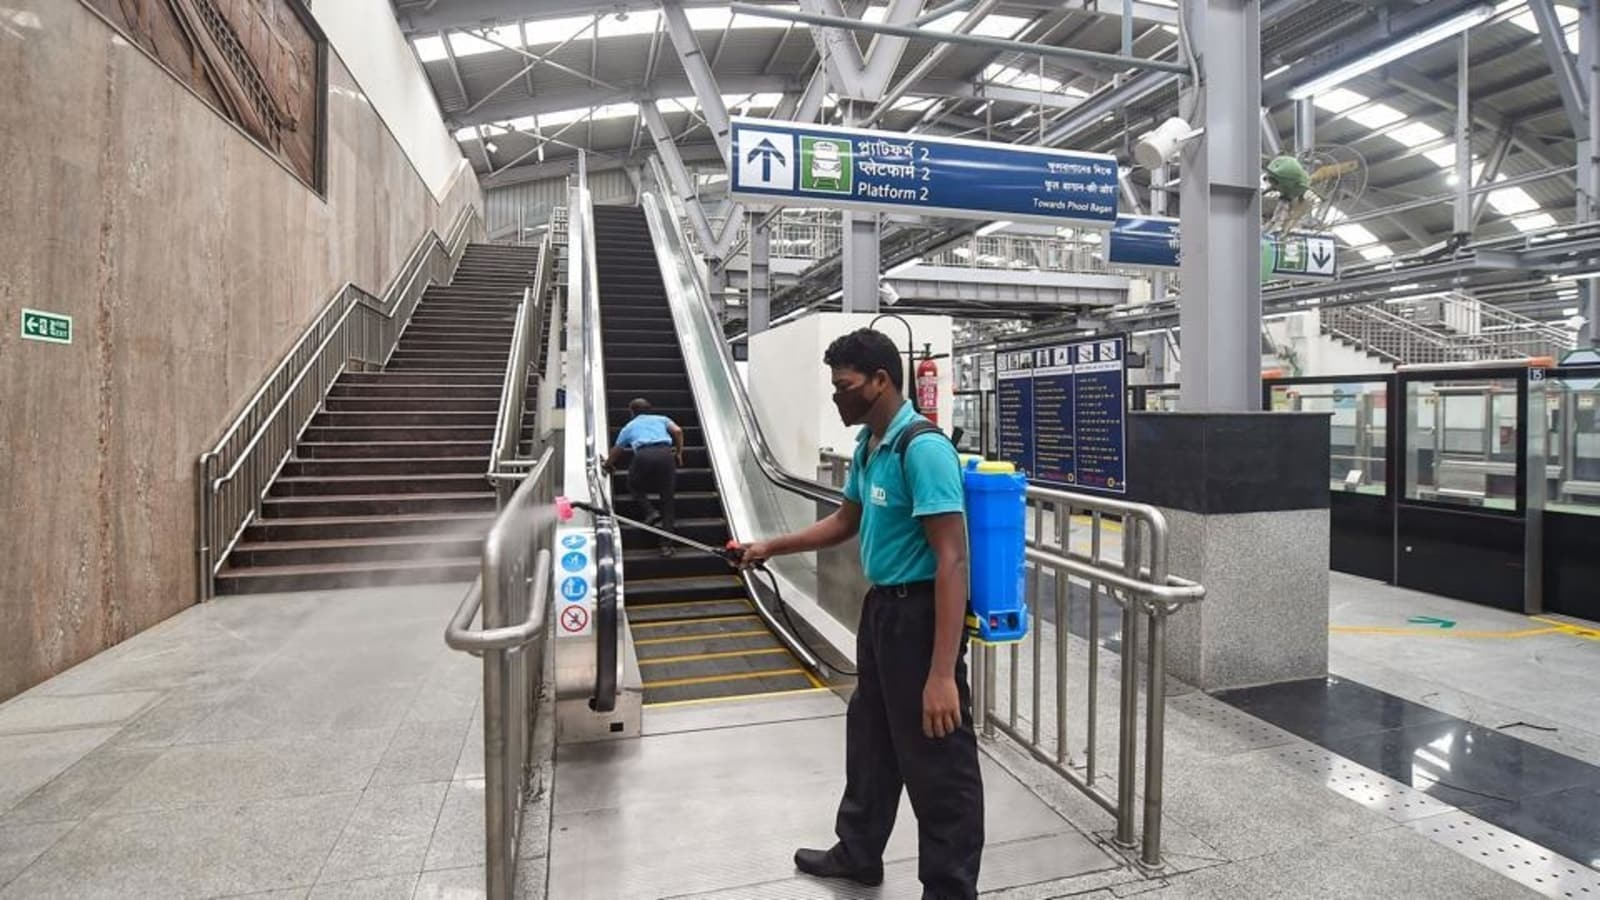 Kolkata Metro to run 10 additional services from Wednesday. Check timings here